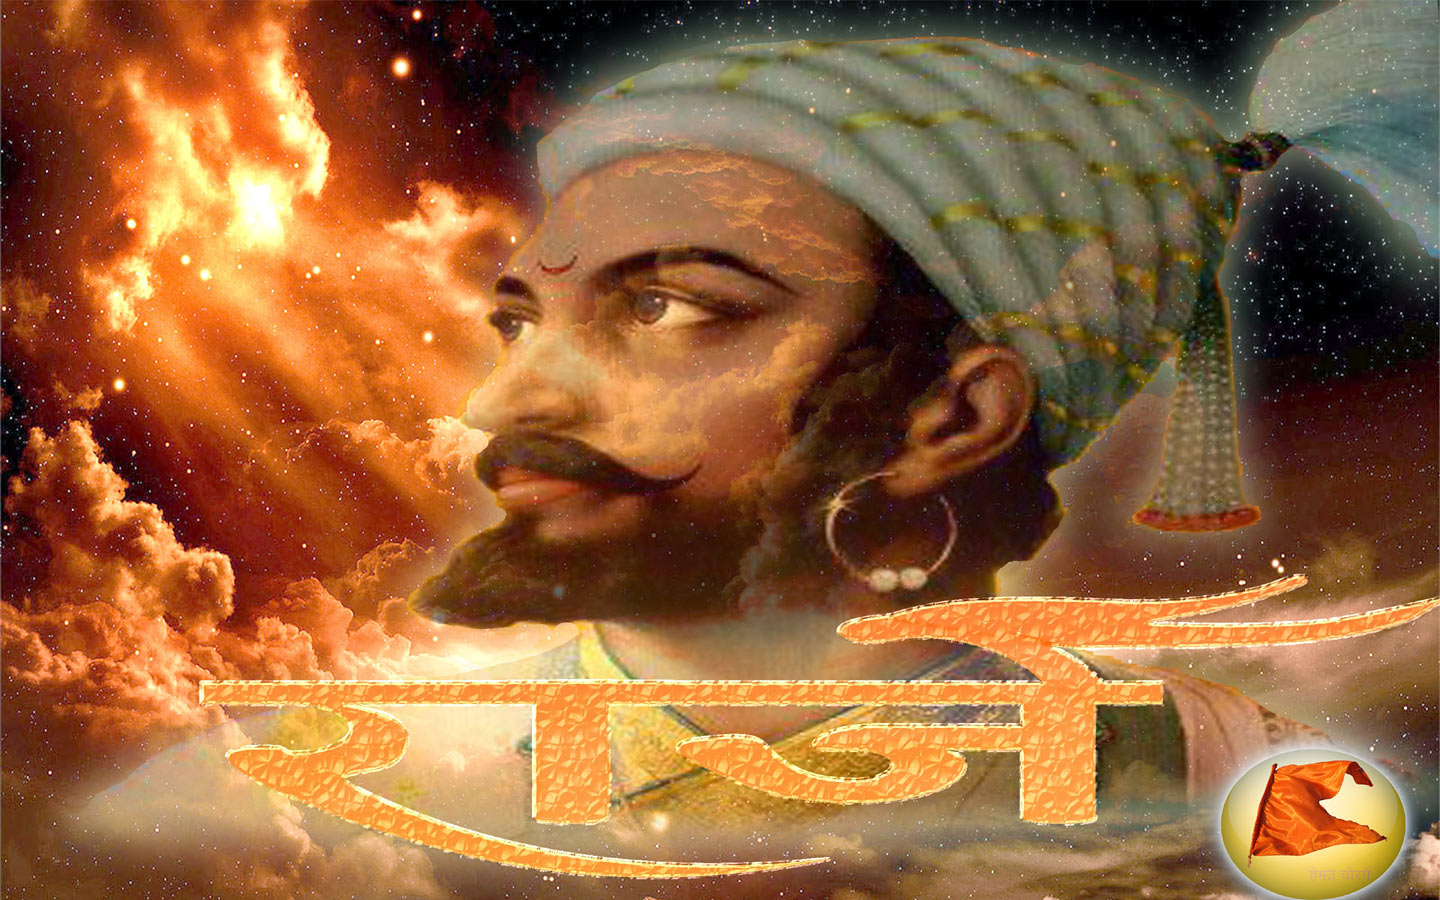 shivaji maharaj full image download